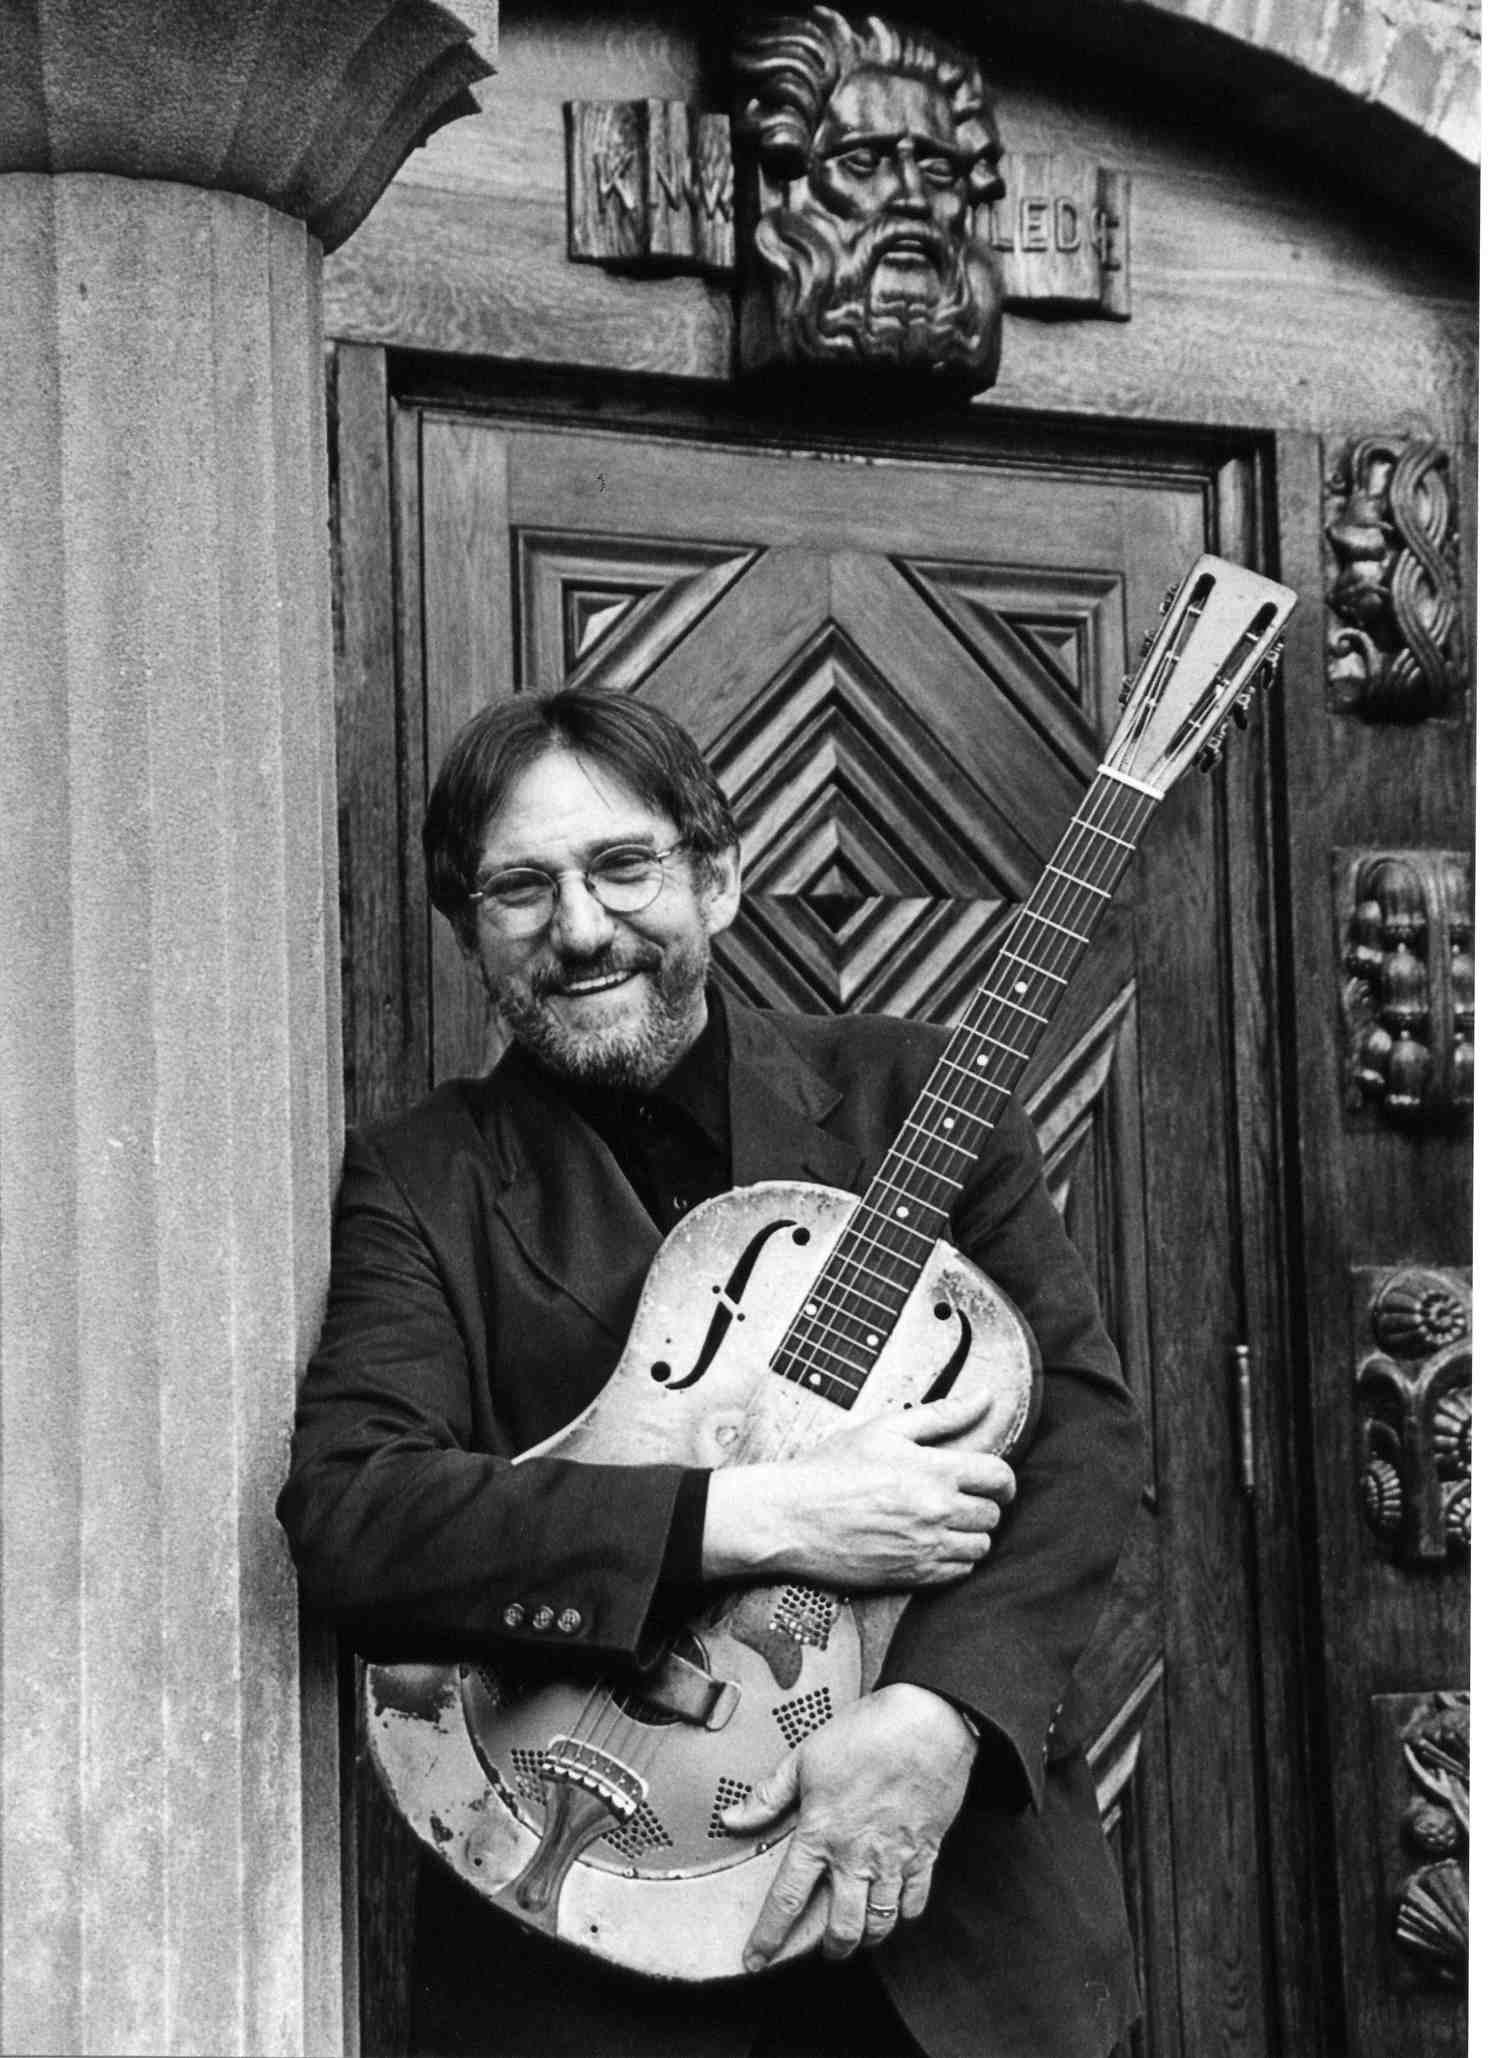 Bob Franke and his guitar